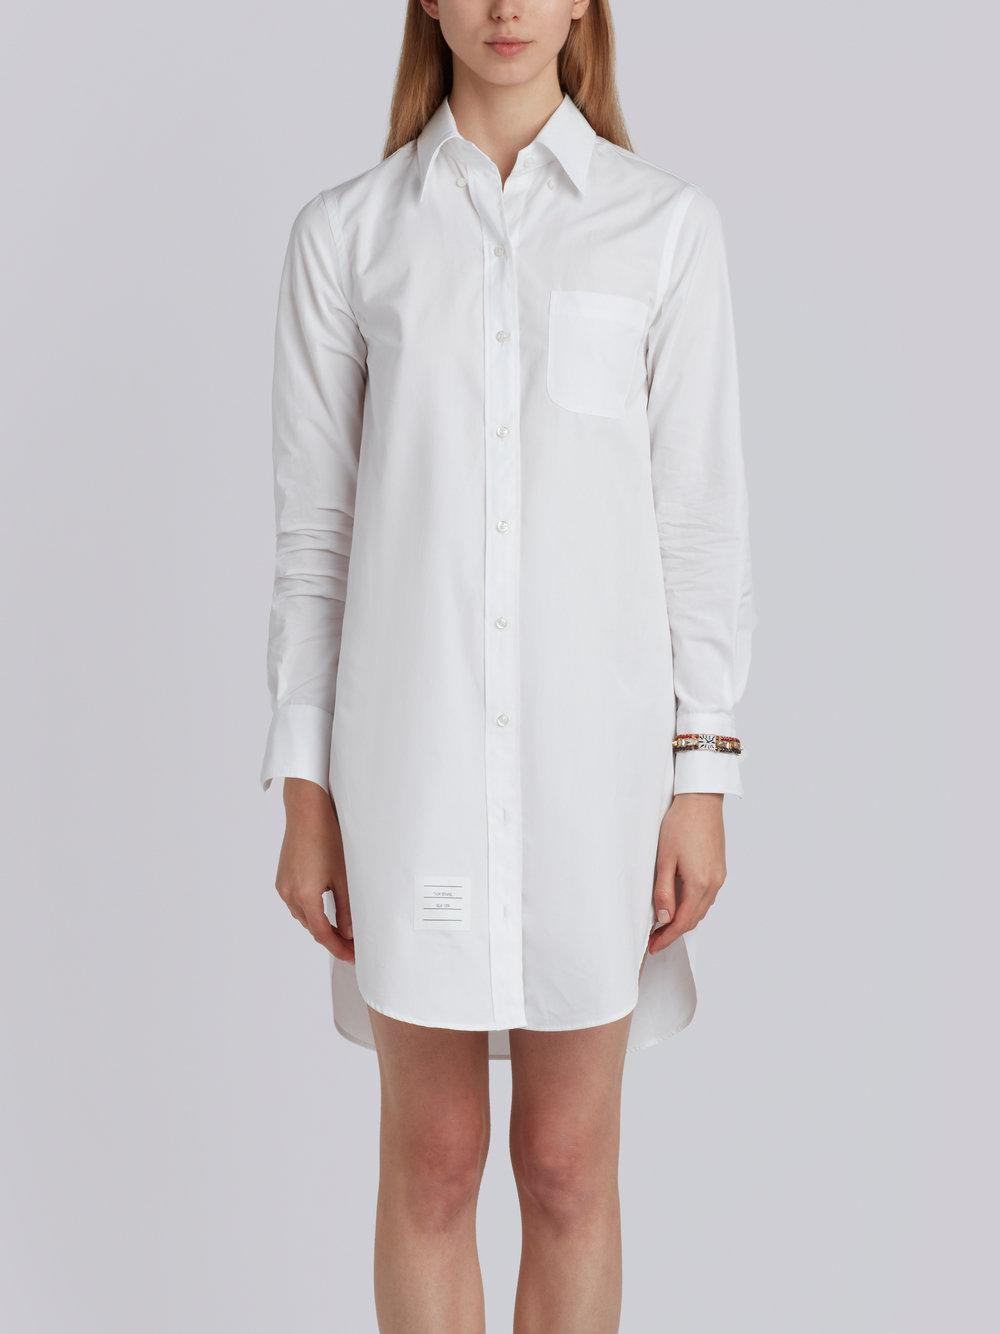 Classic Long Sleeve Button Down Point Collar Thigh Length Shirtdress With Jewelry Applique In Solid Poplin - White Thom Browne SIu3z